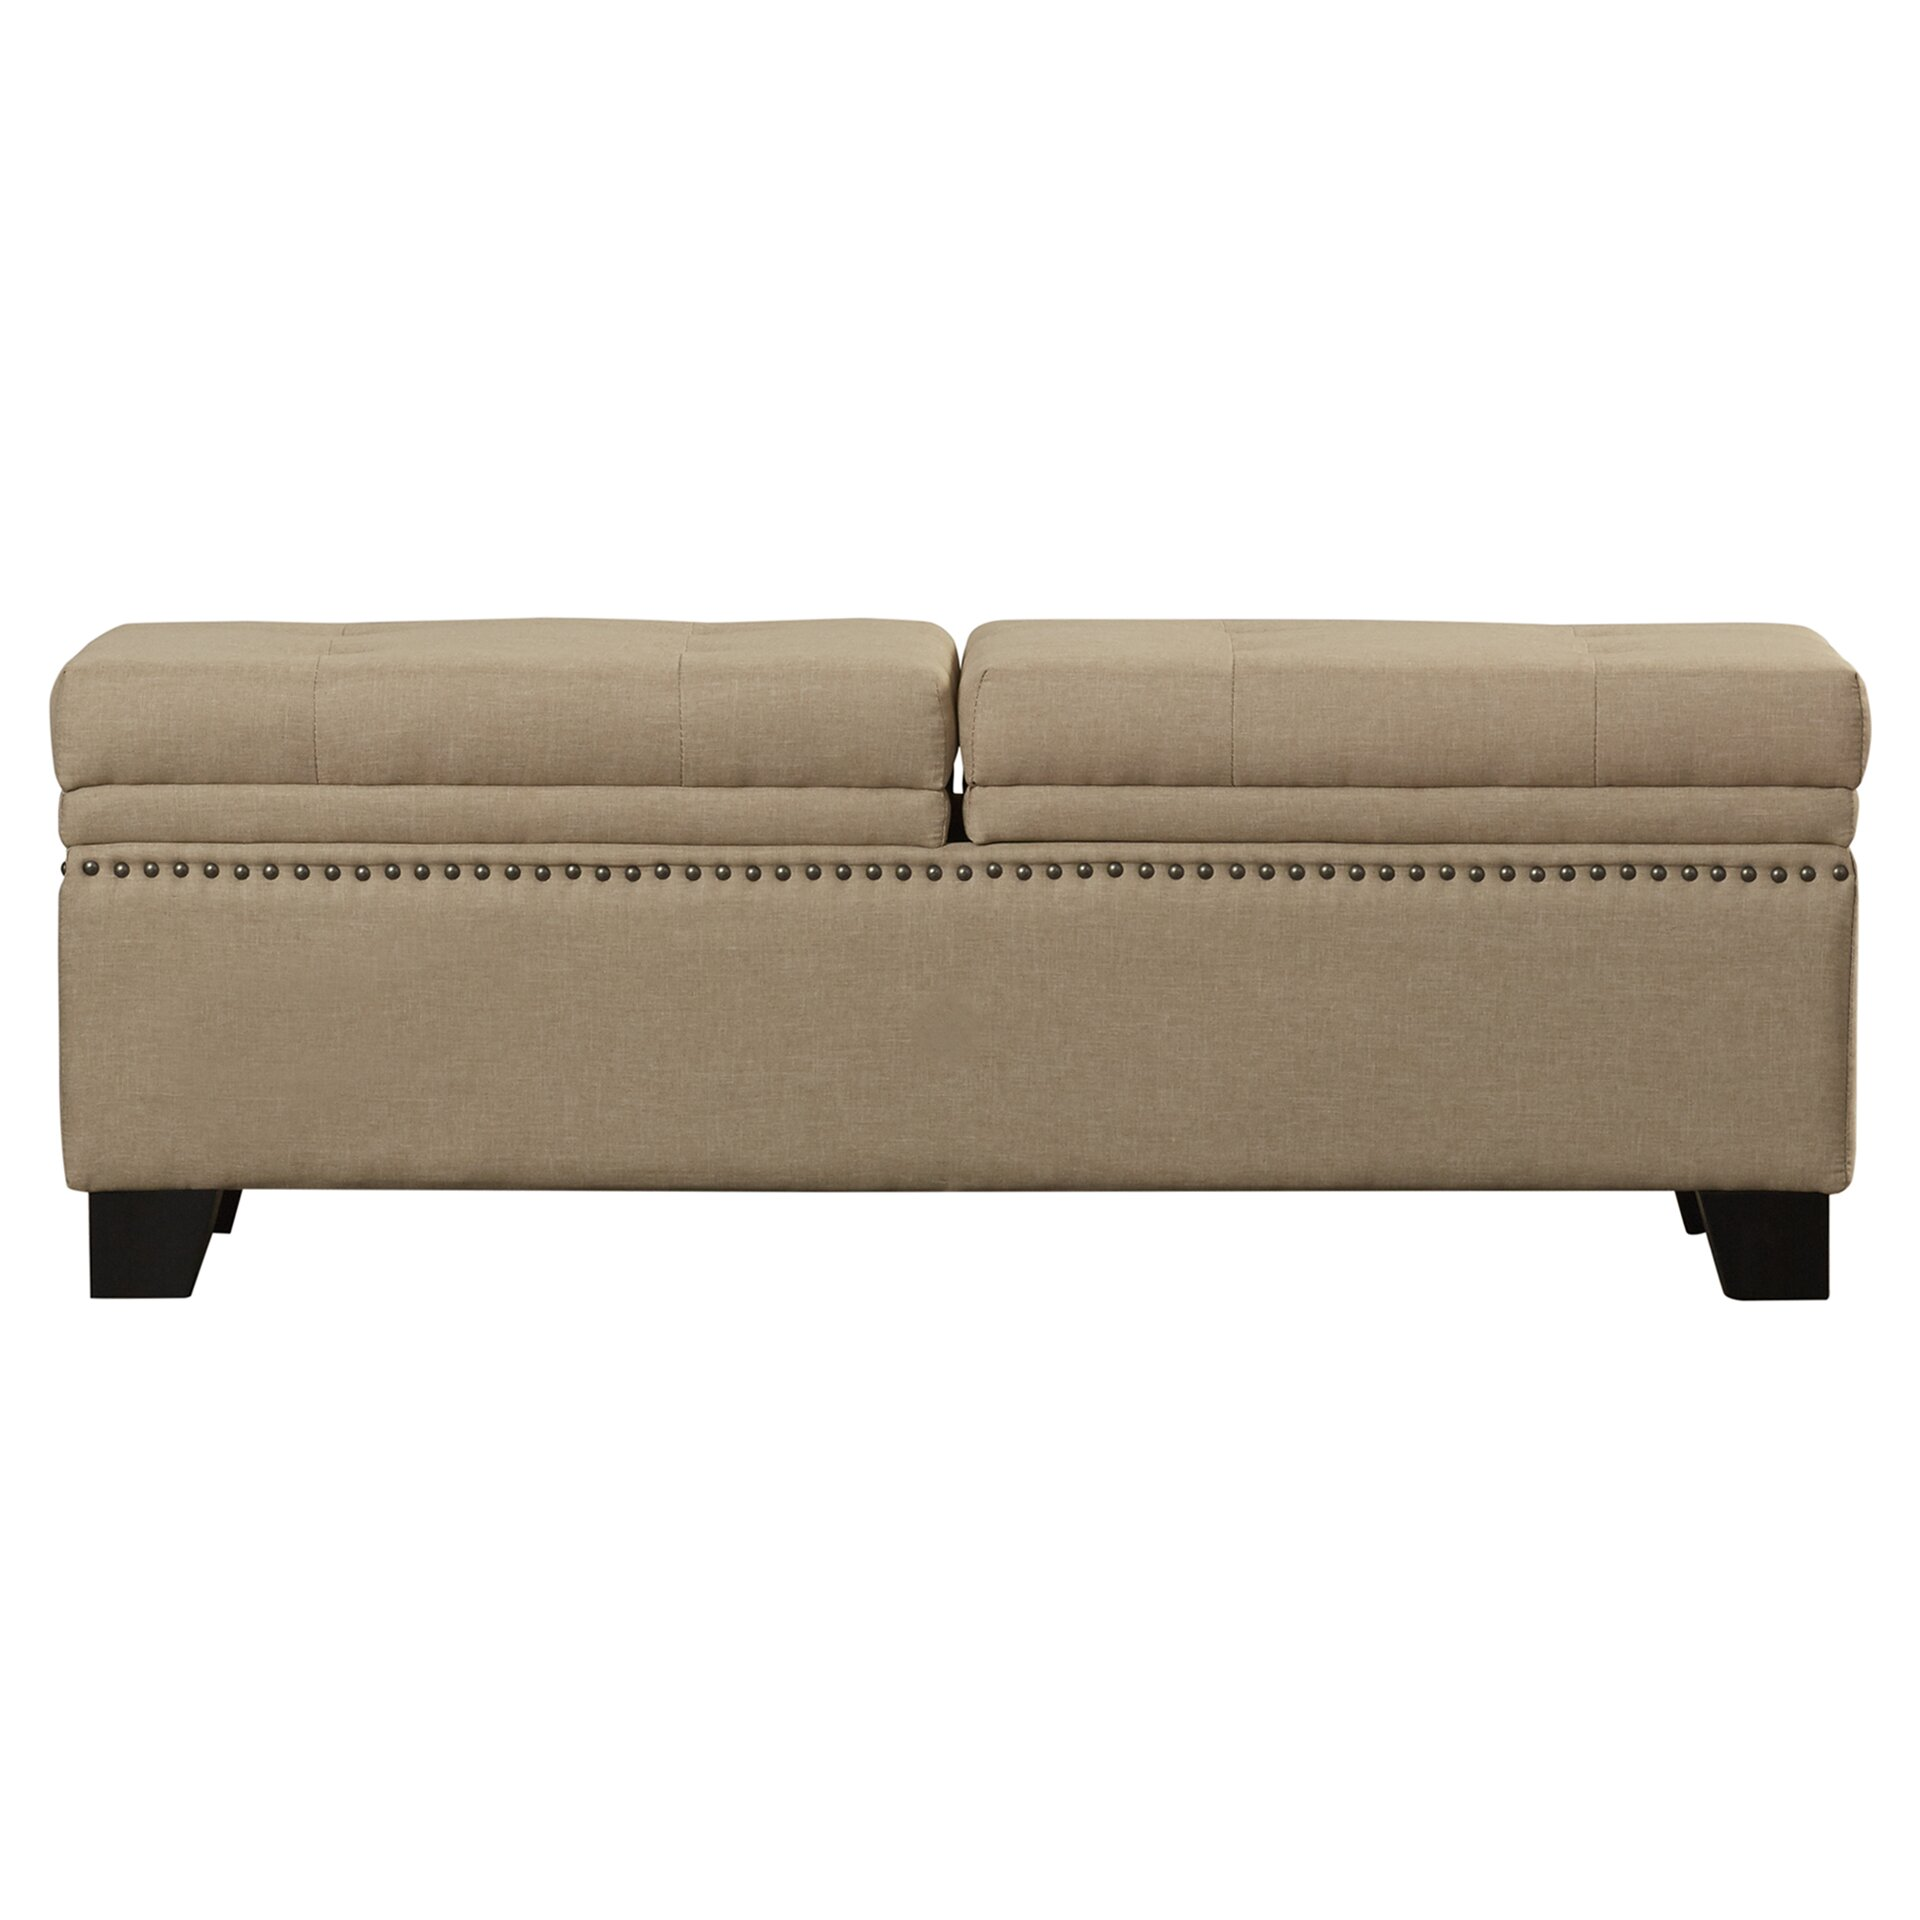 Darby Home Co Moffet Hinged Upholstered Storage Bedroom Bench Reviews Wayfair